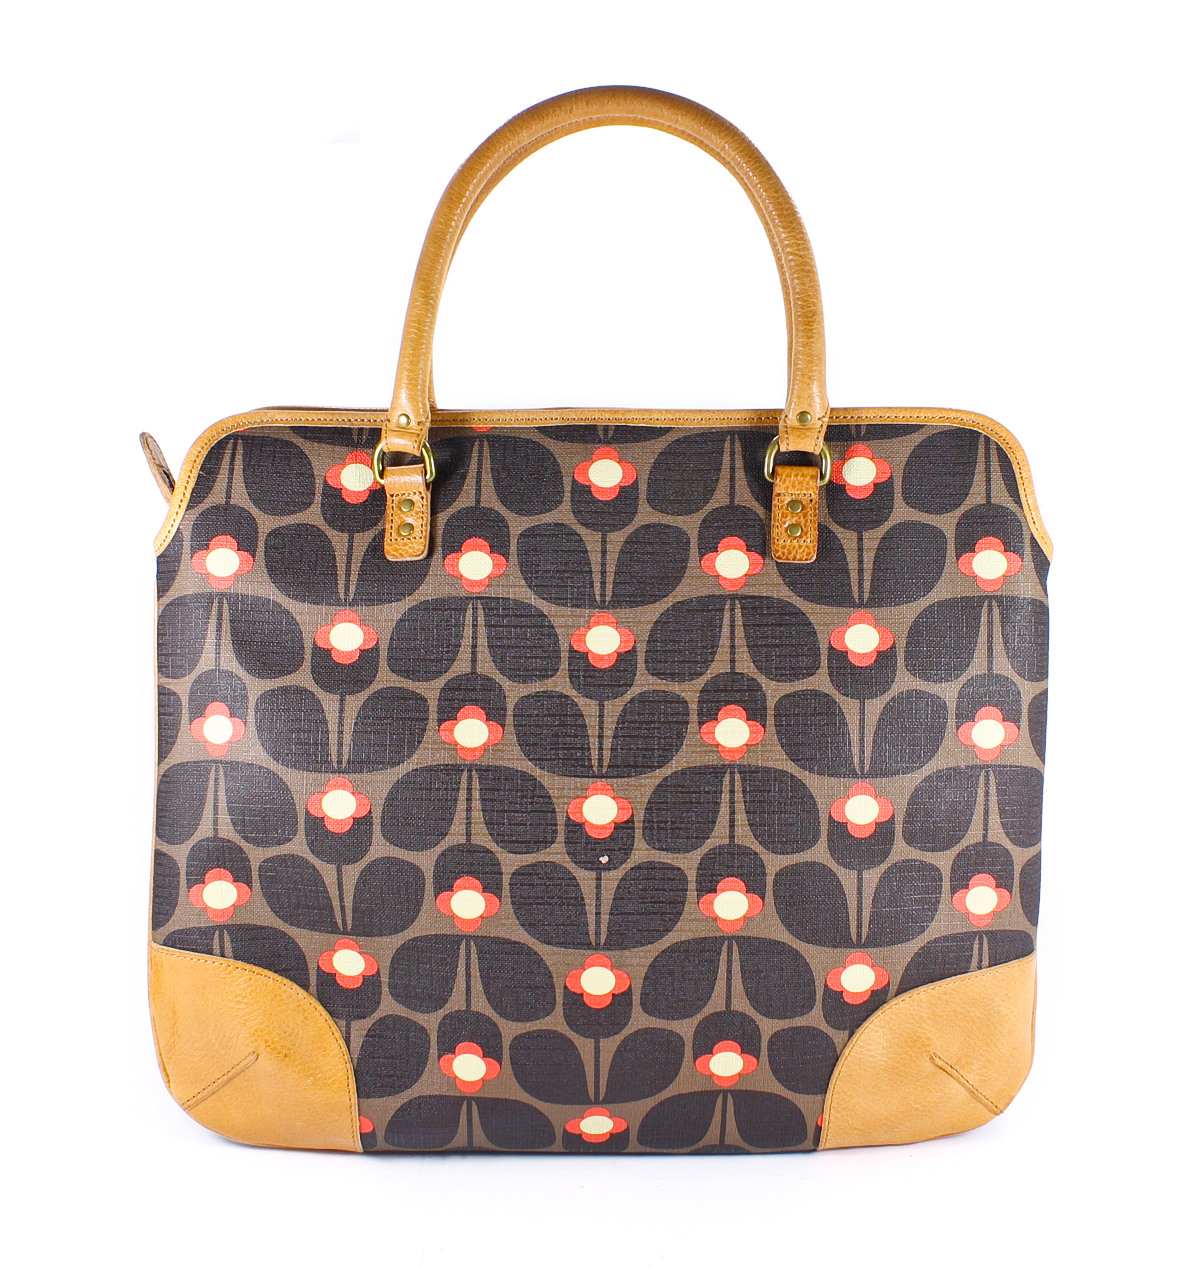 orla kiely large jeanie bag laminated canvas laptop tote. Black Bedroom Furniture Sets. Home Design Ideas